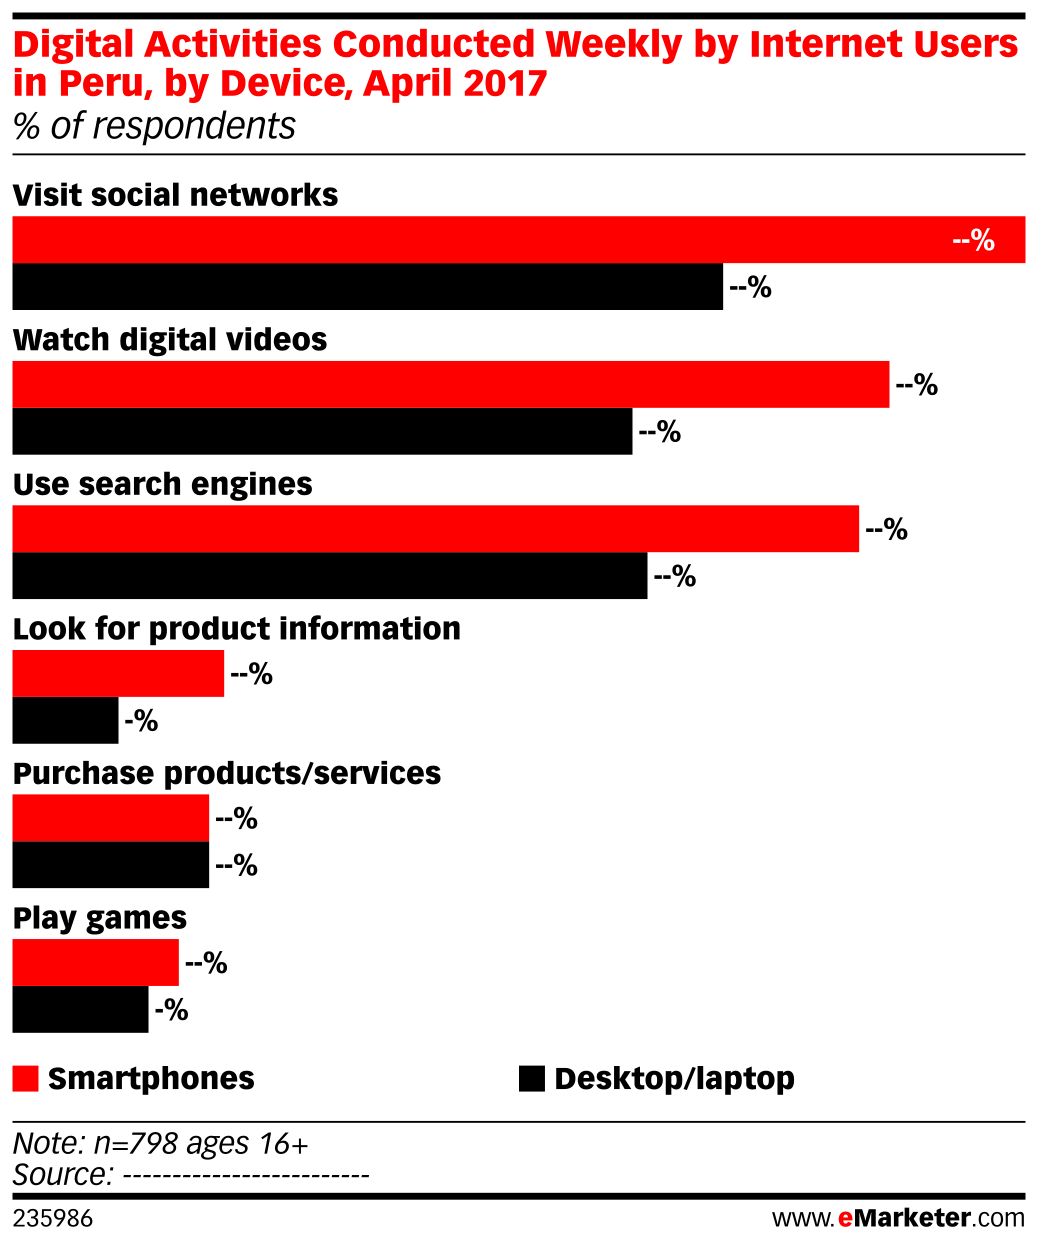 Digital Activities Conducted Weekly by Internet Users in Peru, by Device, April 2017 (% of respondents)